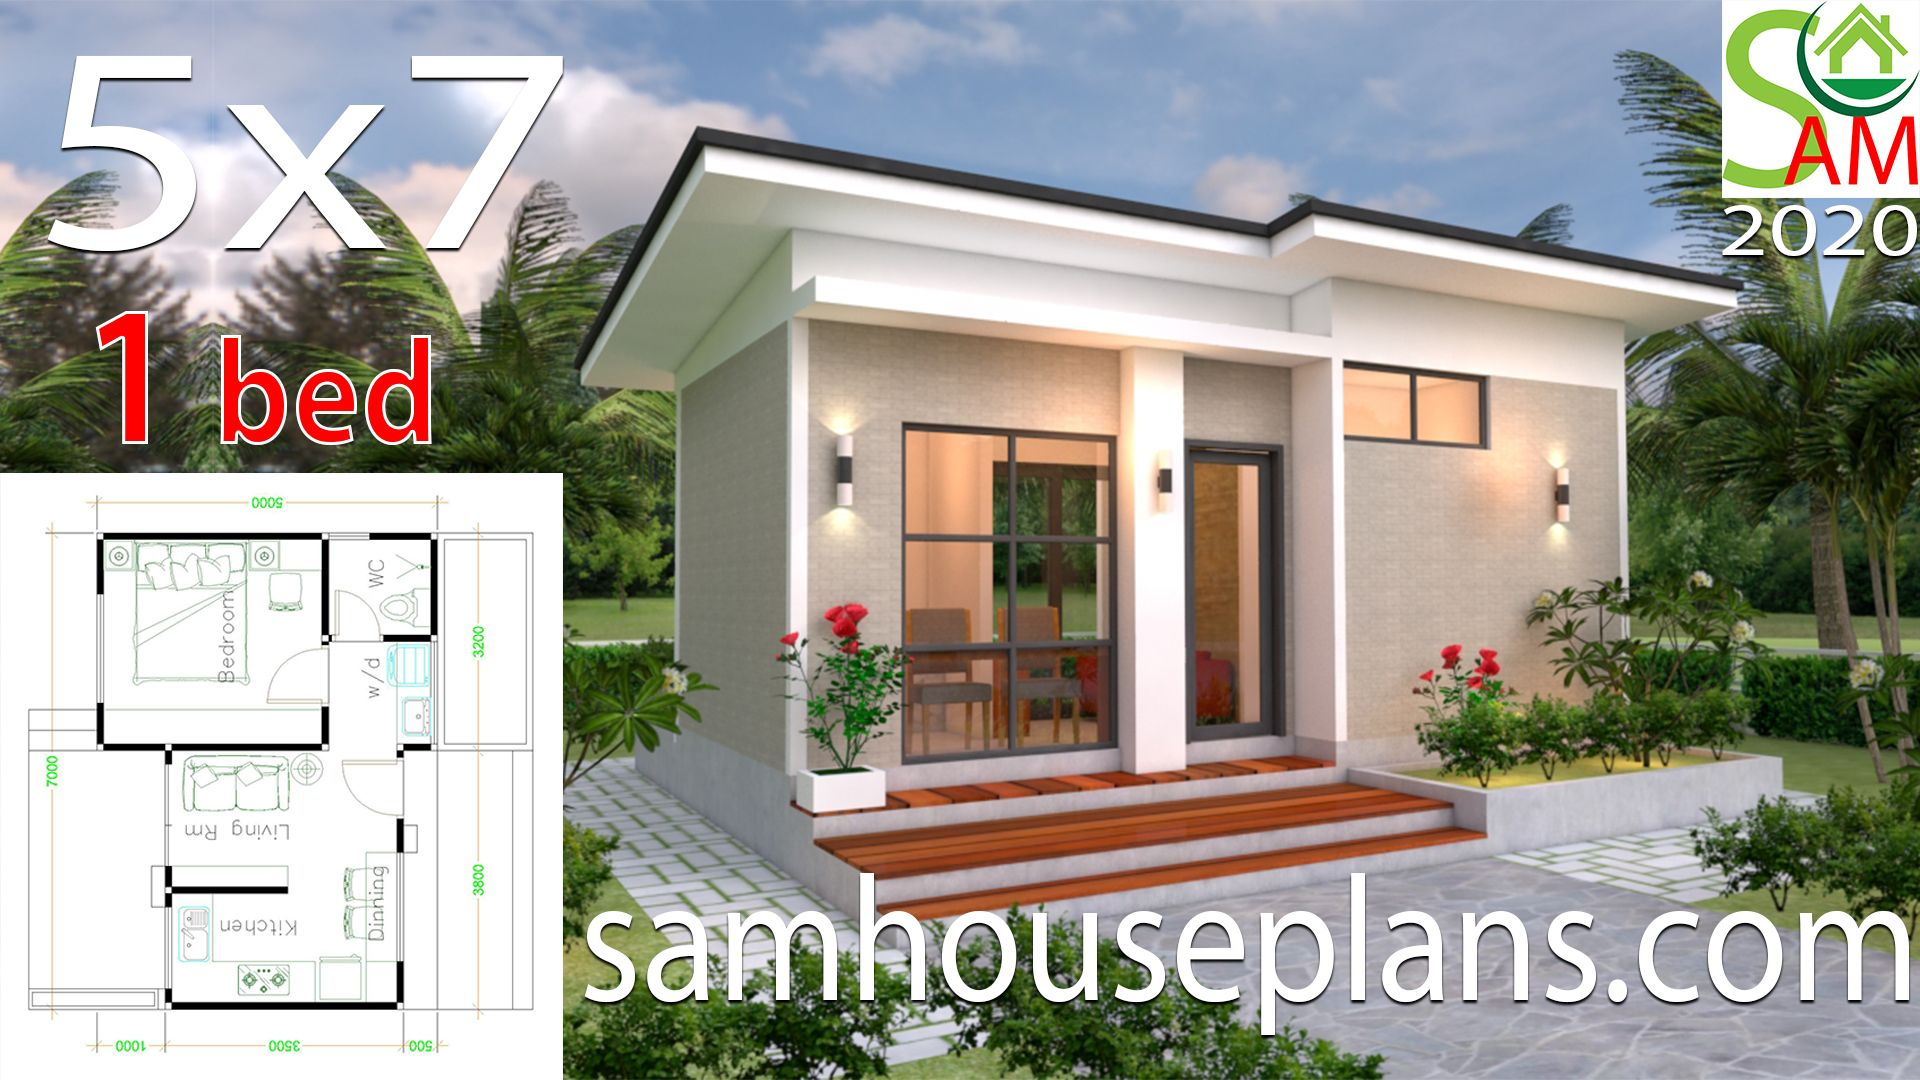 House Design Plans 5x7 With One Bedroom Shed Roof The House Has Car Parking And Garden Living Roo Small House Design Plans Diy House Plans House Plans Mansion